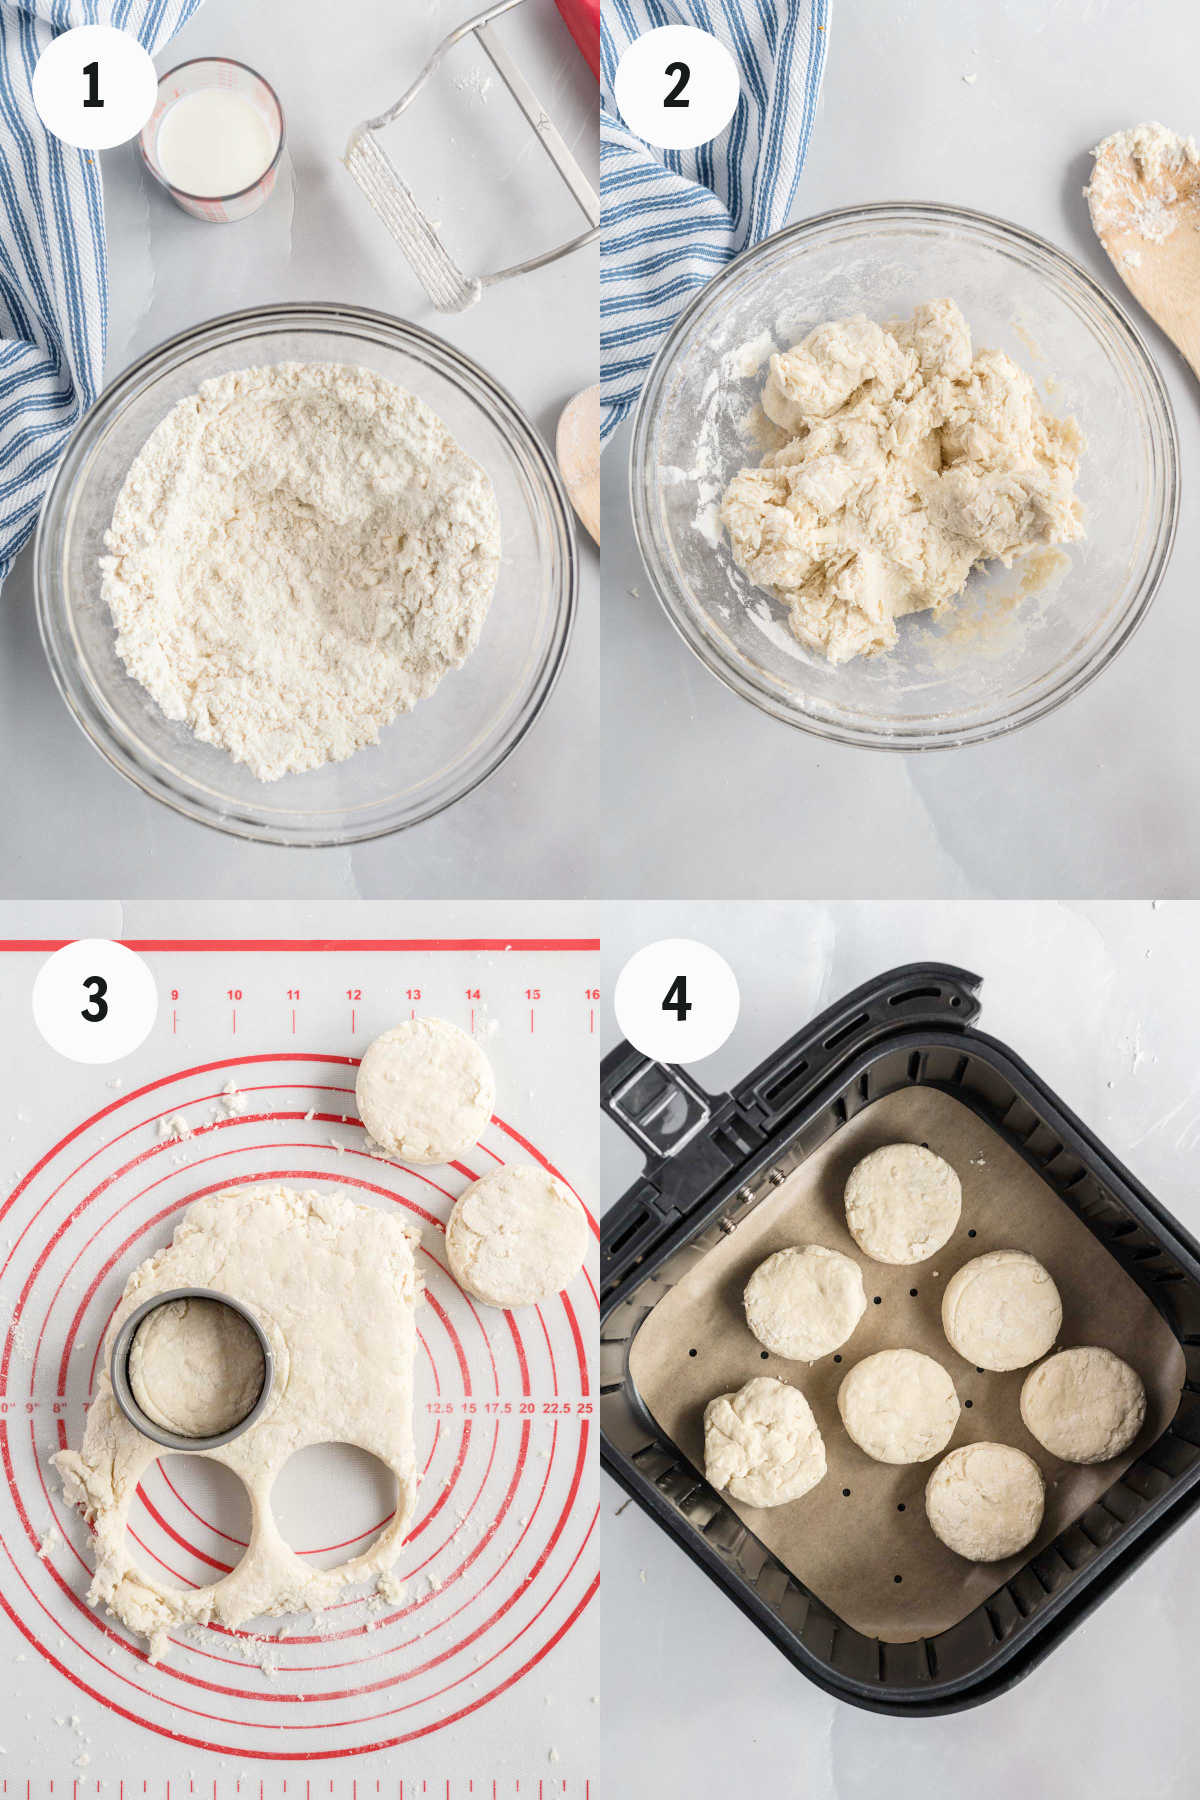 Mixing dough, cutting into rounds with biscuit cutter, and placing in air fryer basket.